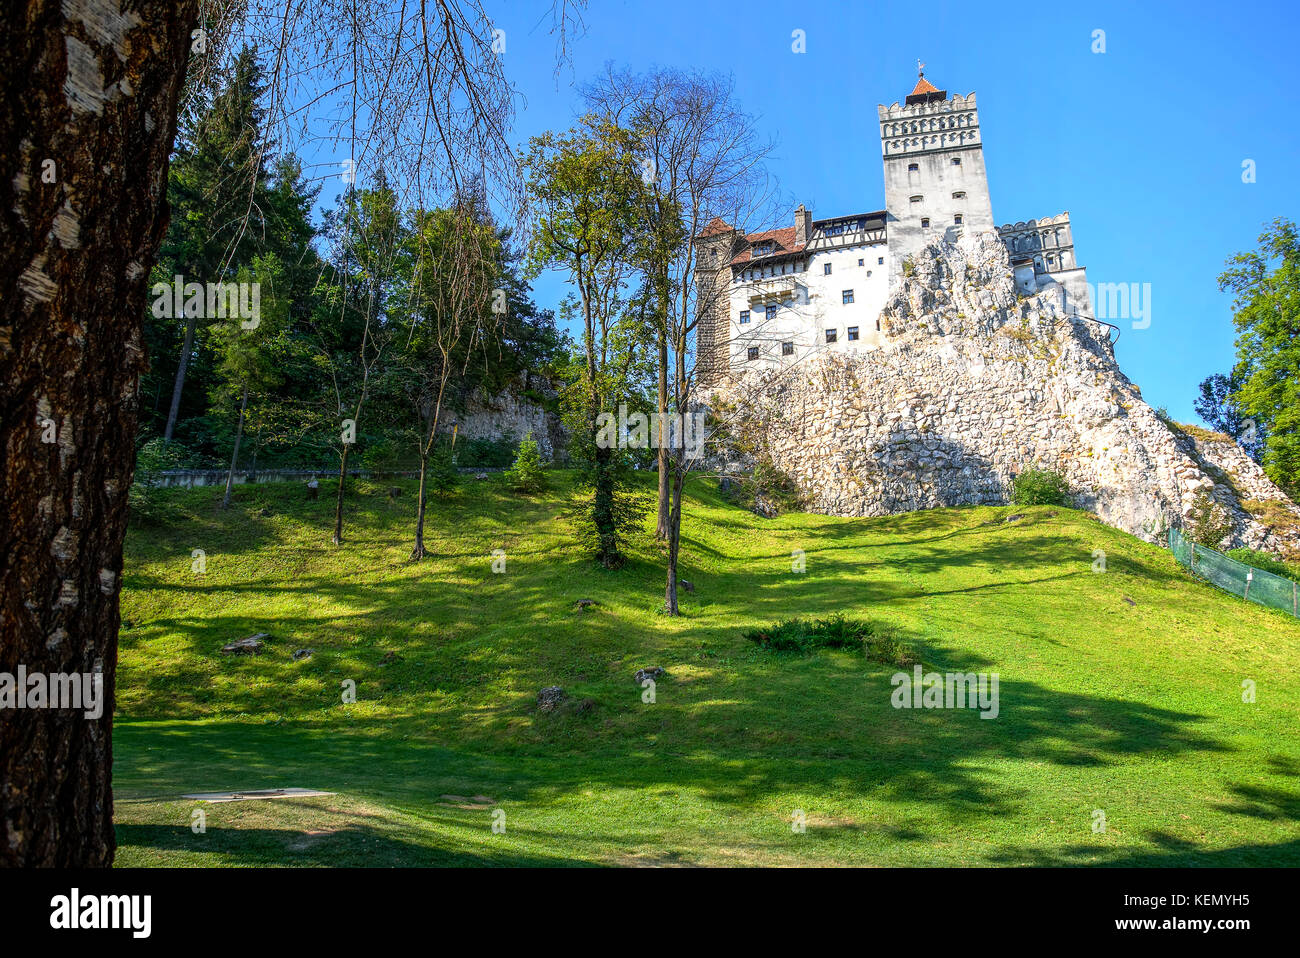 Bran Castle, also know as Dracula's castle in Transylvania, Romania - Stock Image